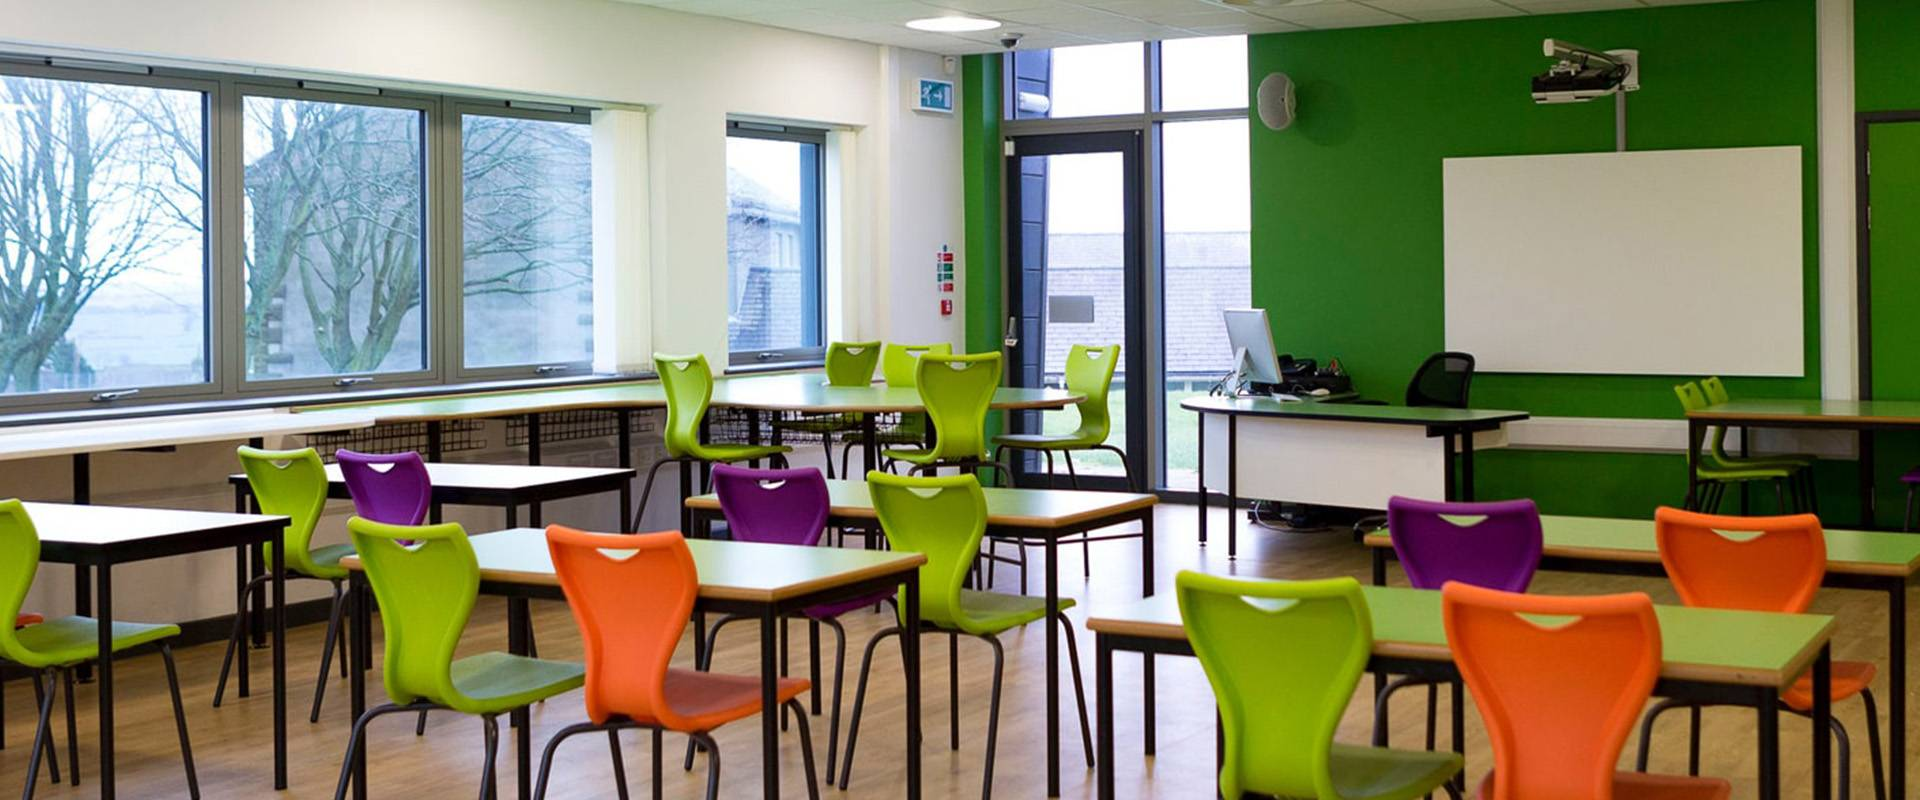 Commercial cleaning for education facilities.